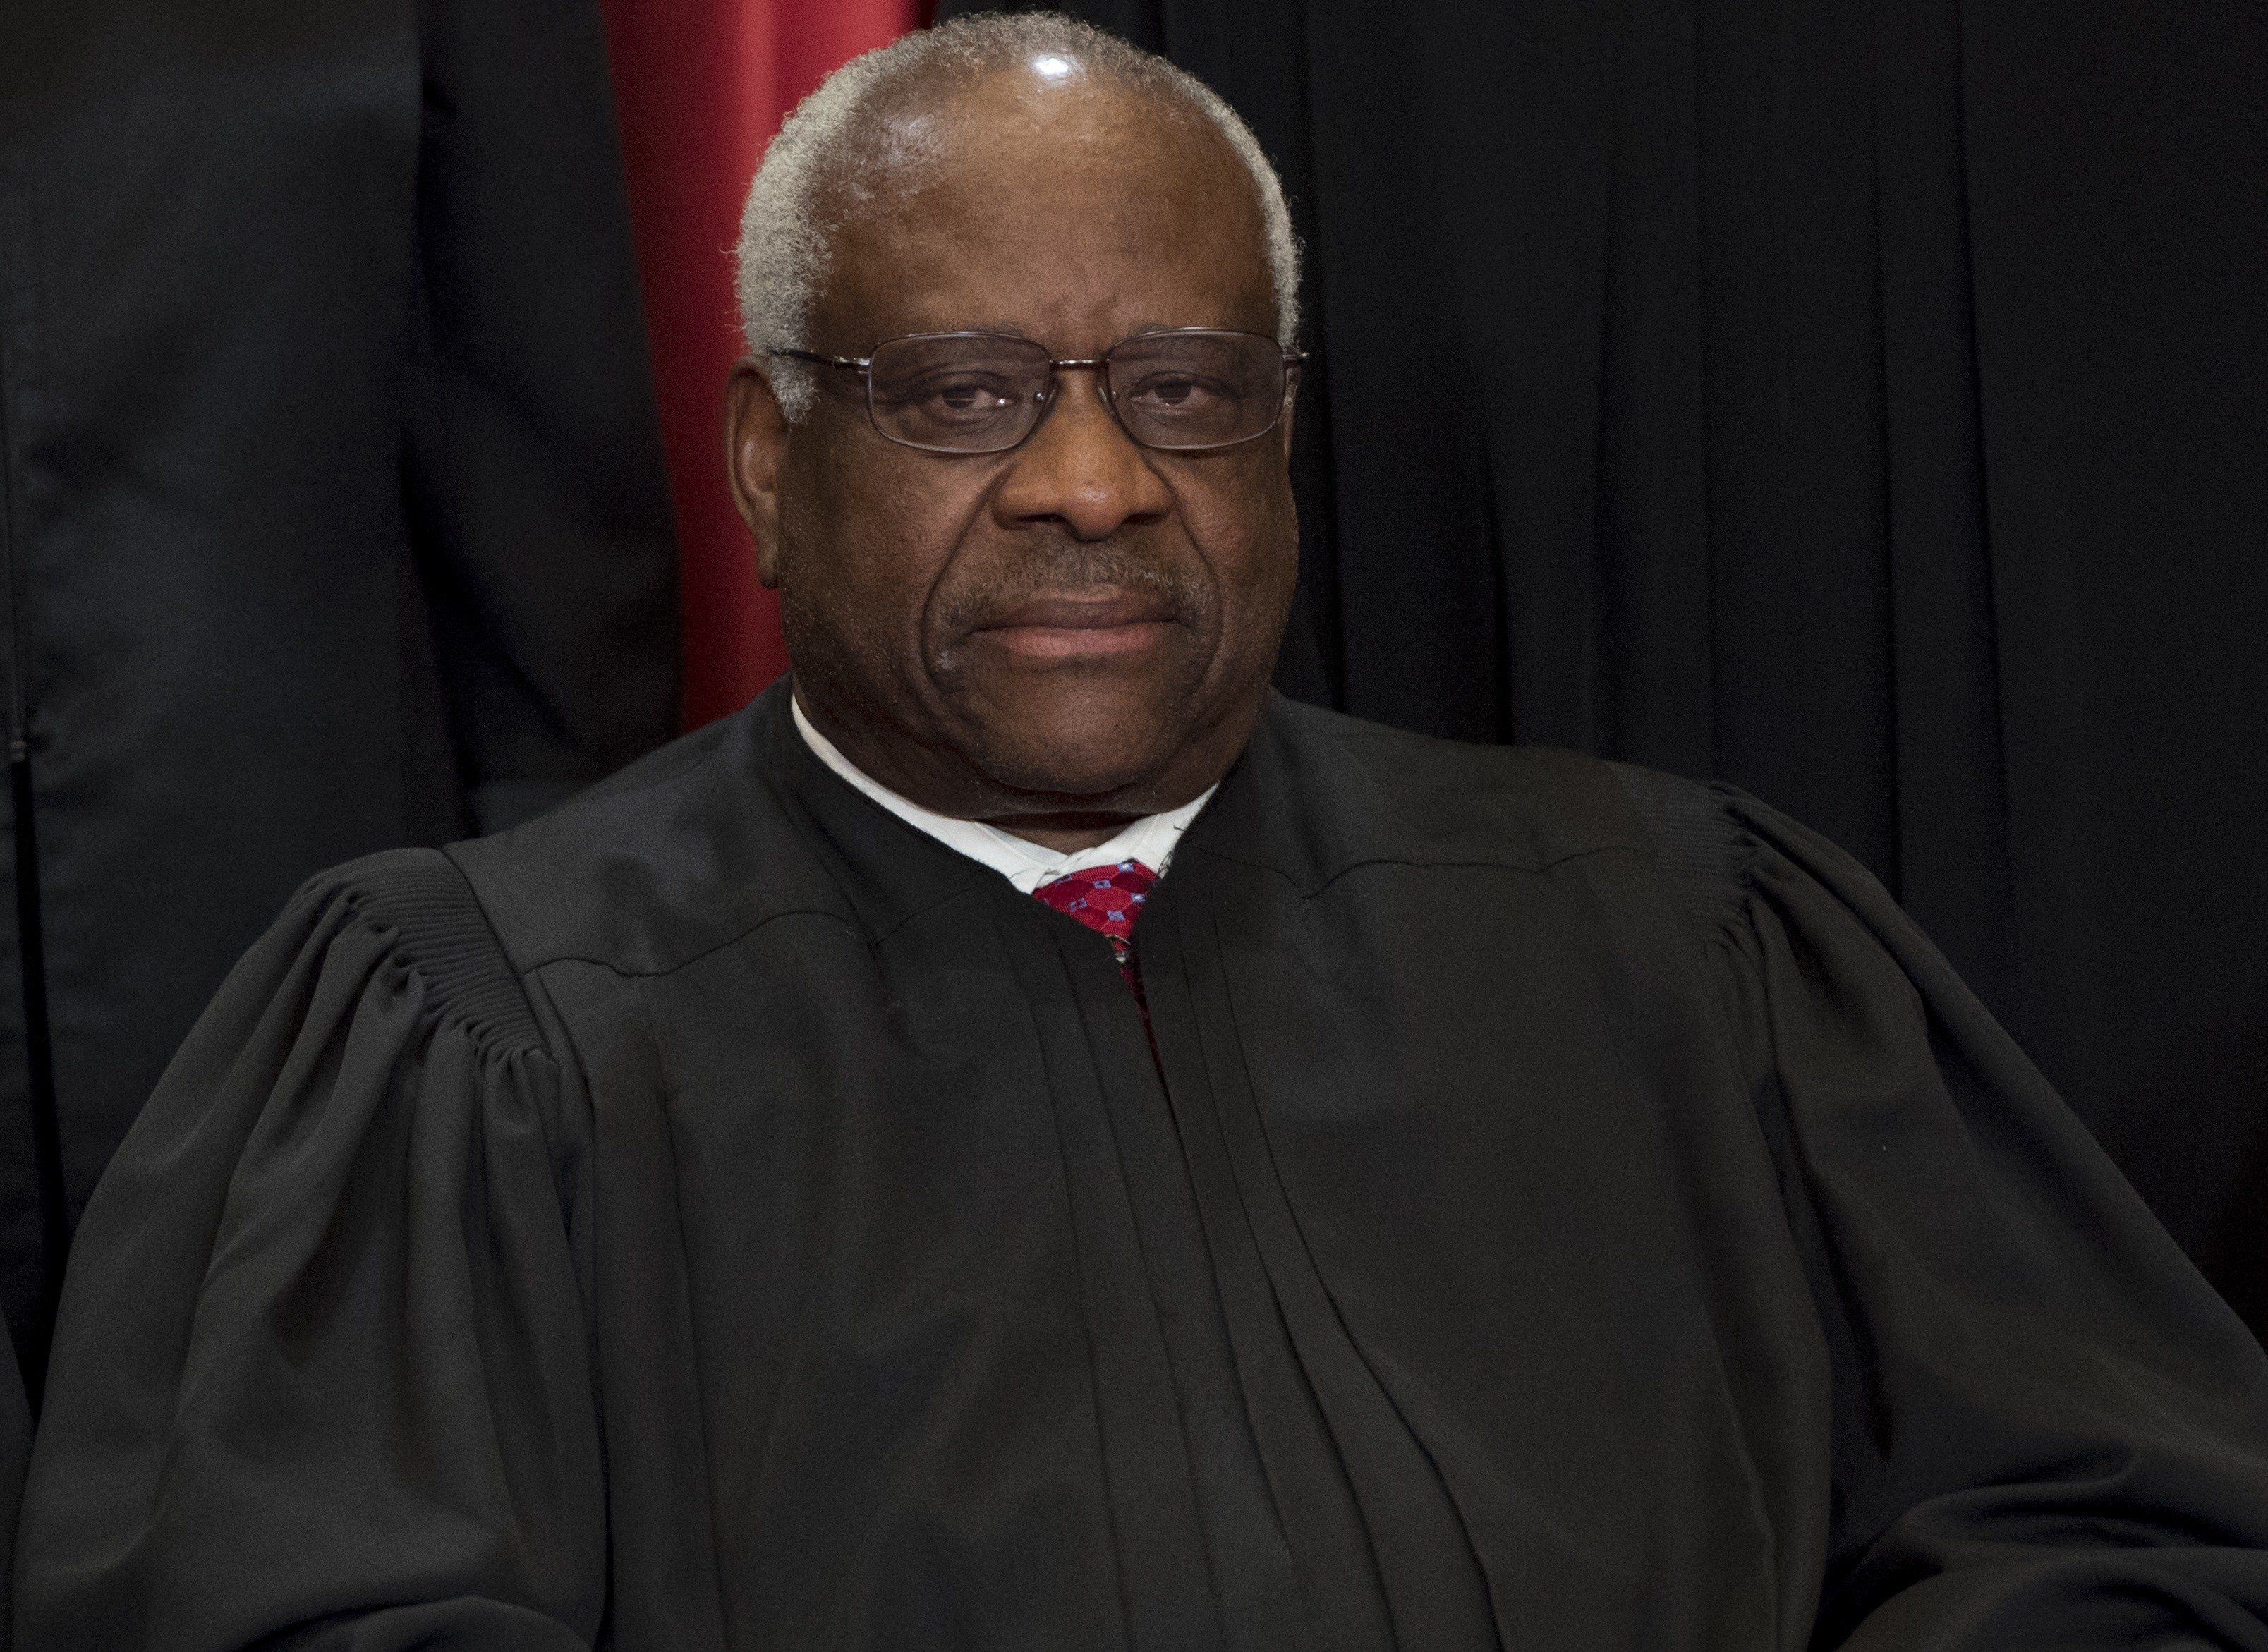 Clarence Thomas Sexually Harassed Me. Yes, He Should Be